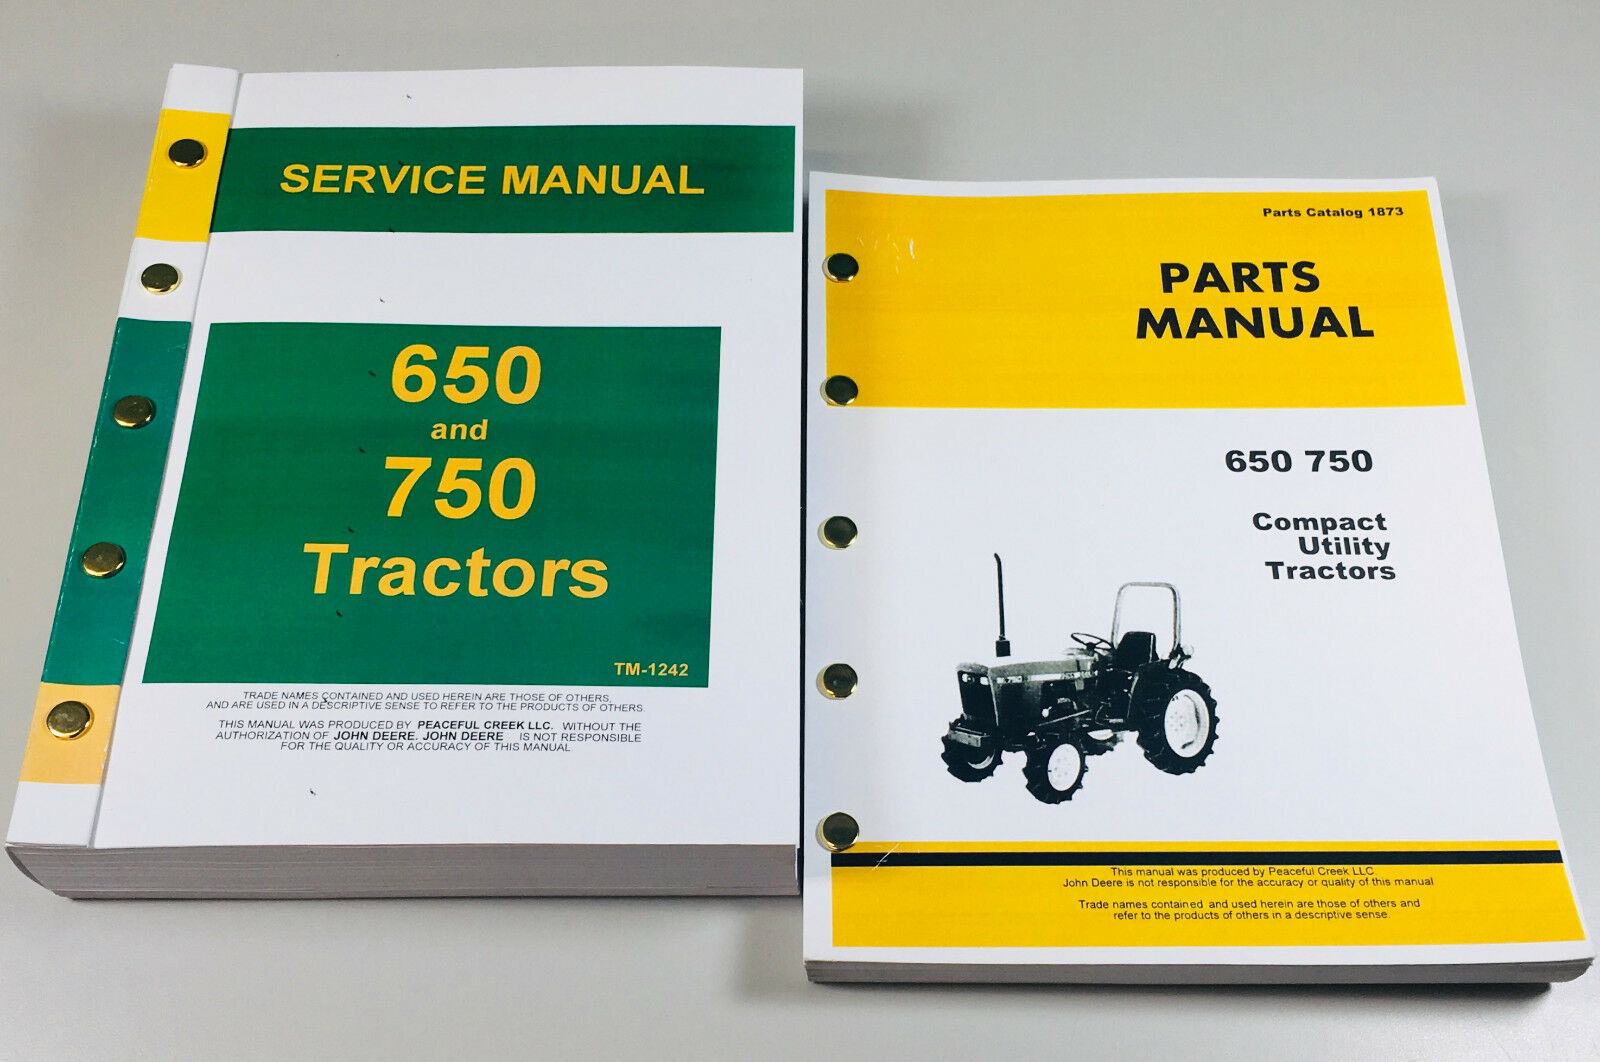 Complete Factory Service and Parts Manuals, Covers entire tractor.